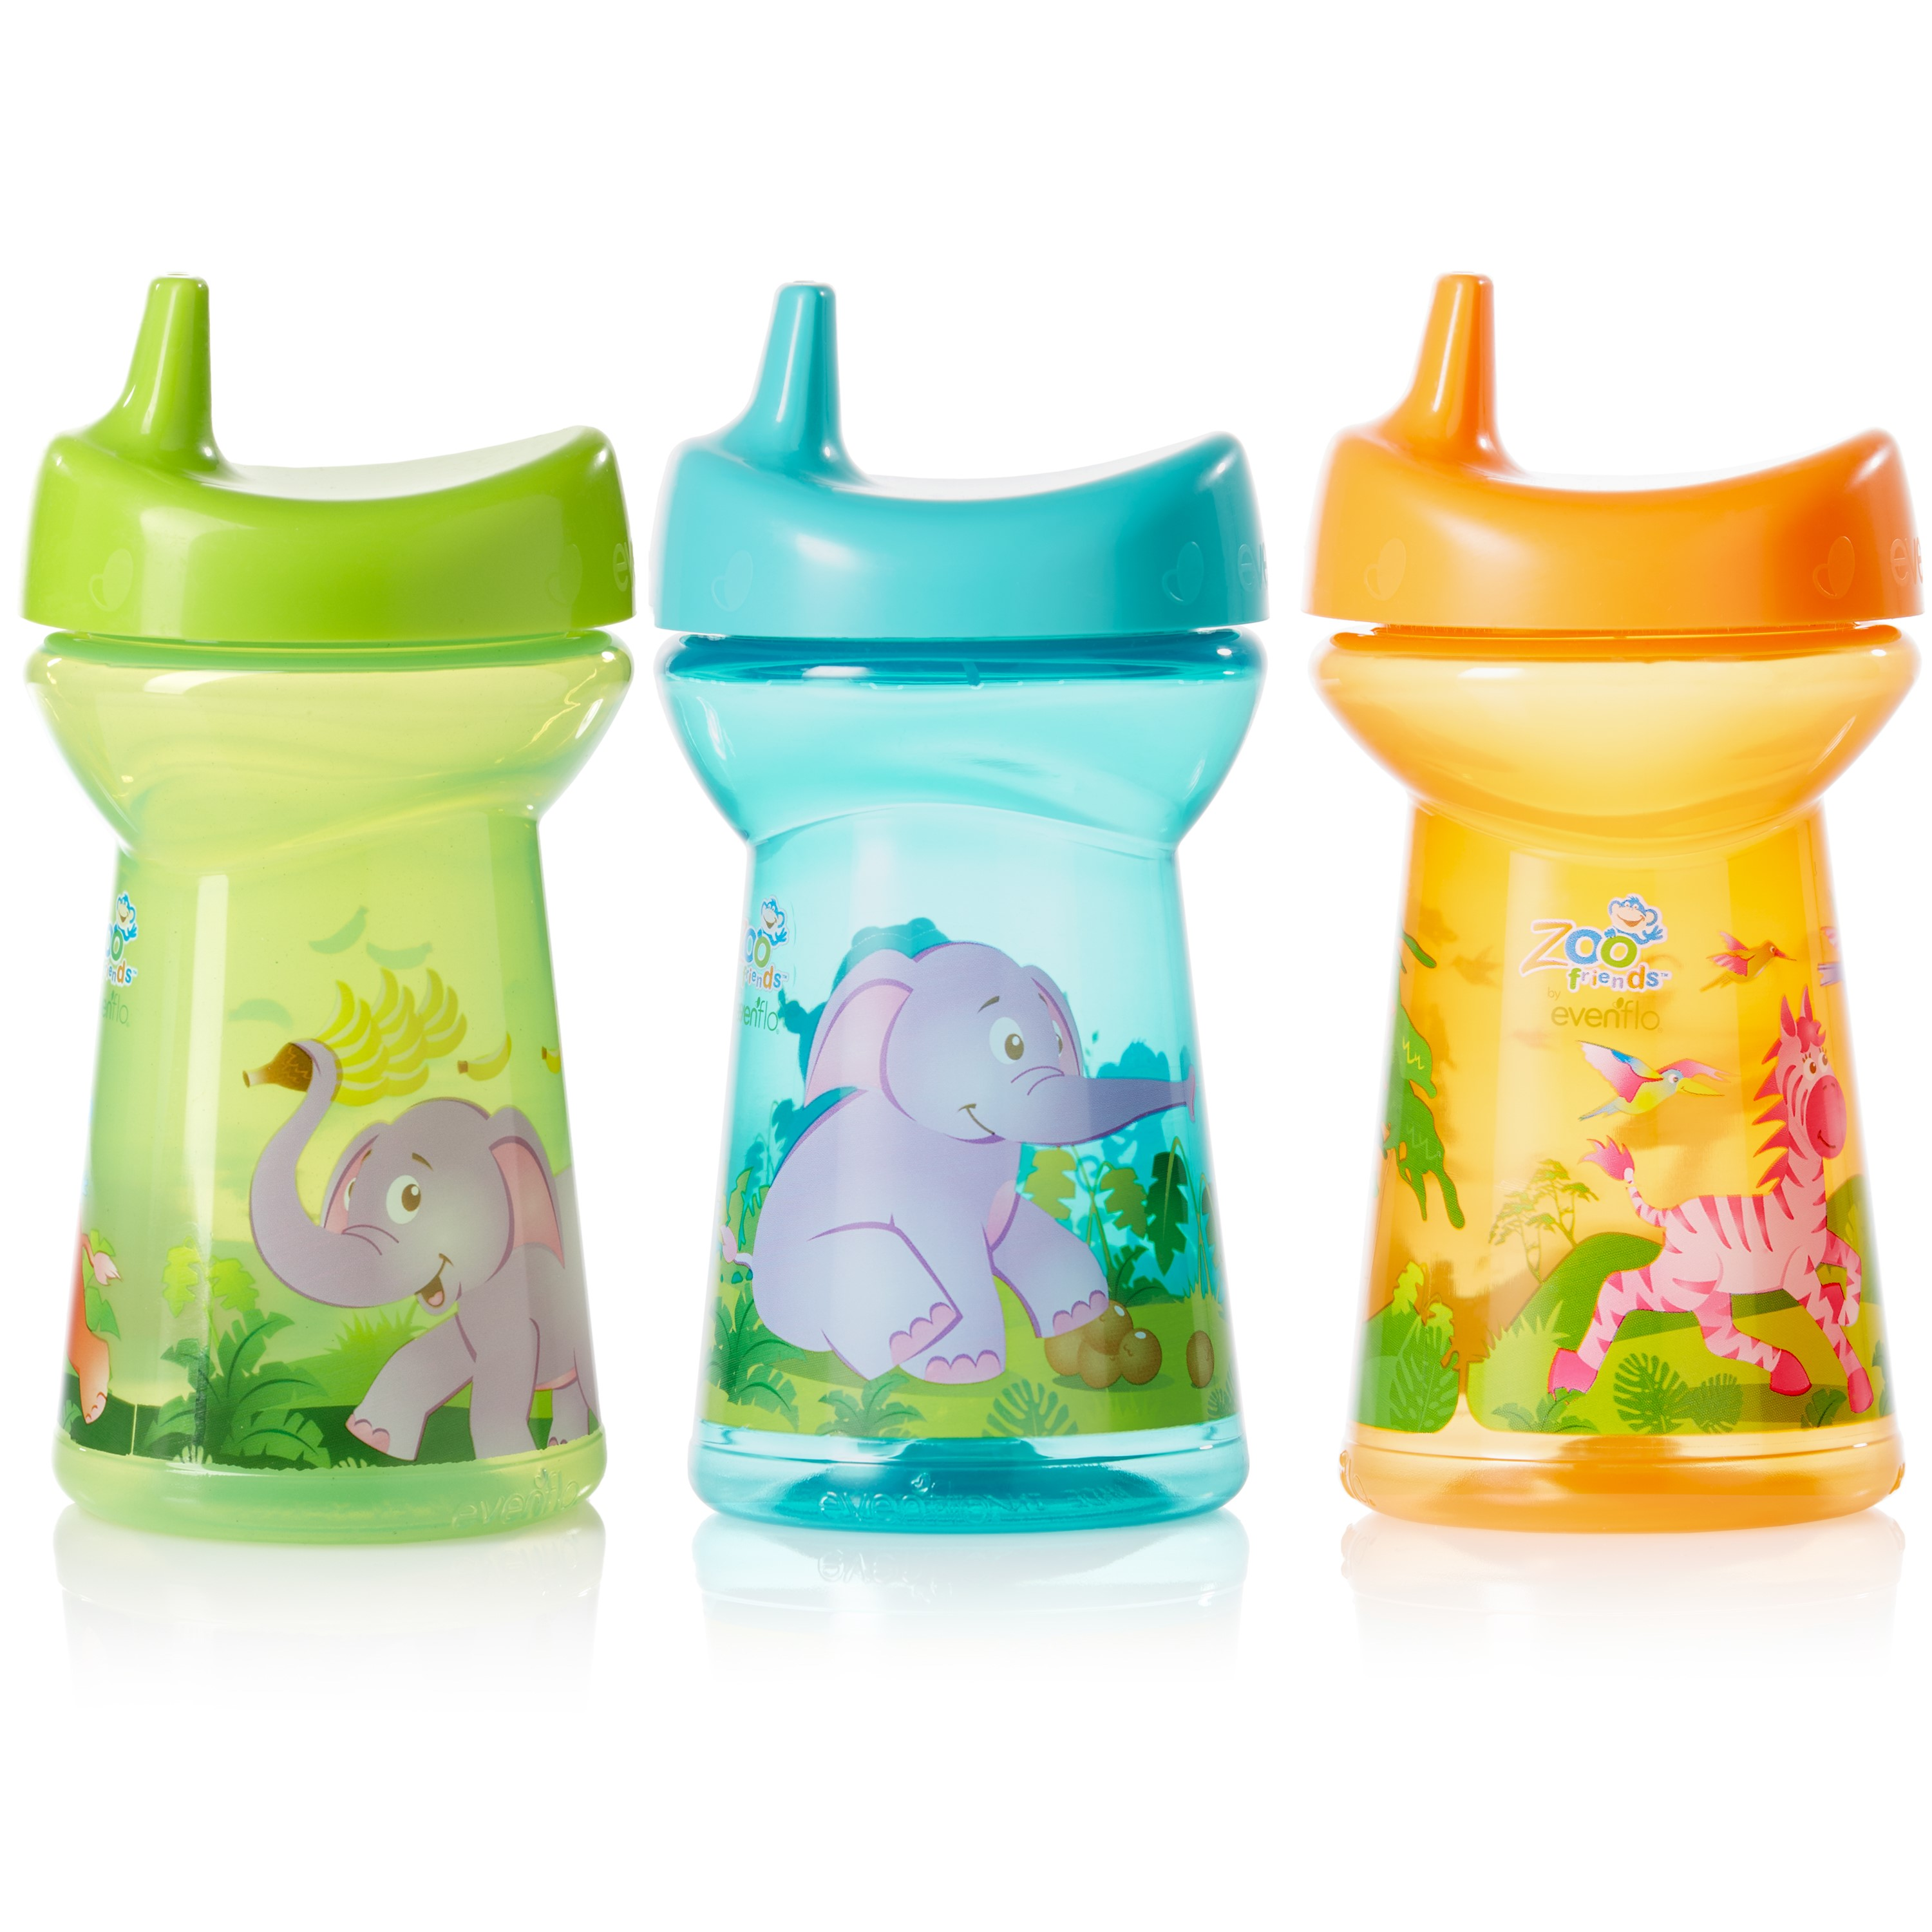 Evenflo Feeding Zoo Friends Tripleflo Hard Spout Sippy Cup � with 1-Piece Silicone Valve 10oz, Assortment, 3ct by Evenflo Feeding